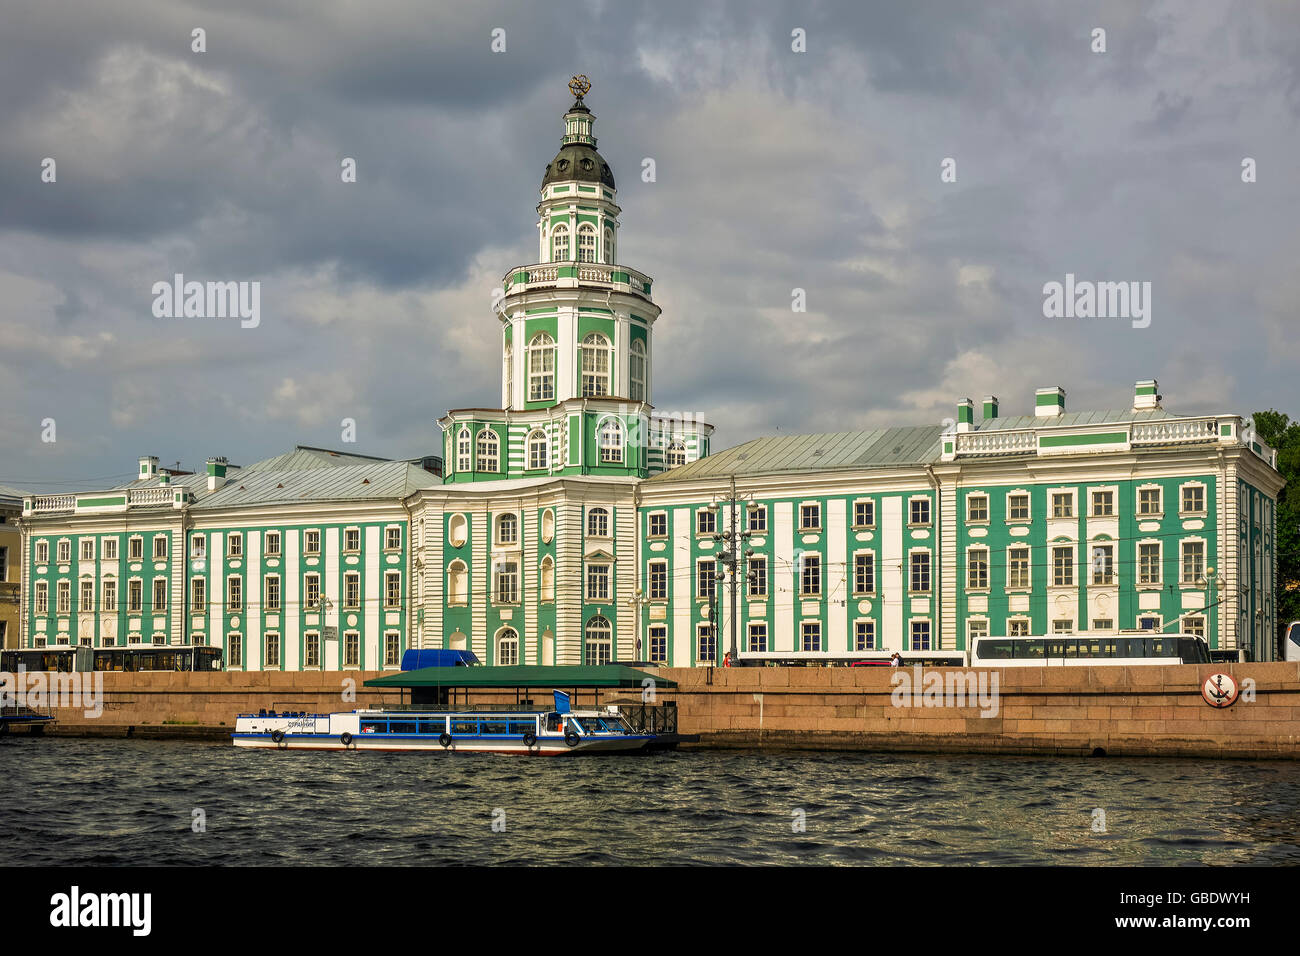 Kunstkamera Anthropology and Ethnology Museum Saint Petersburg Russia - Stock Image